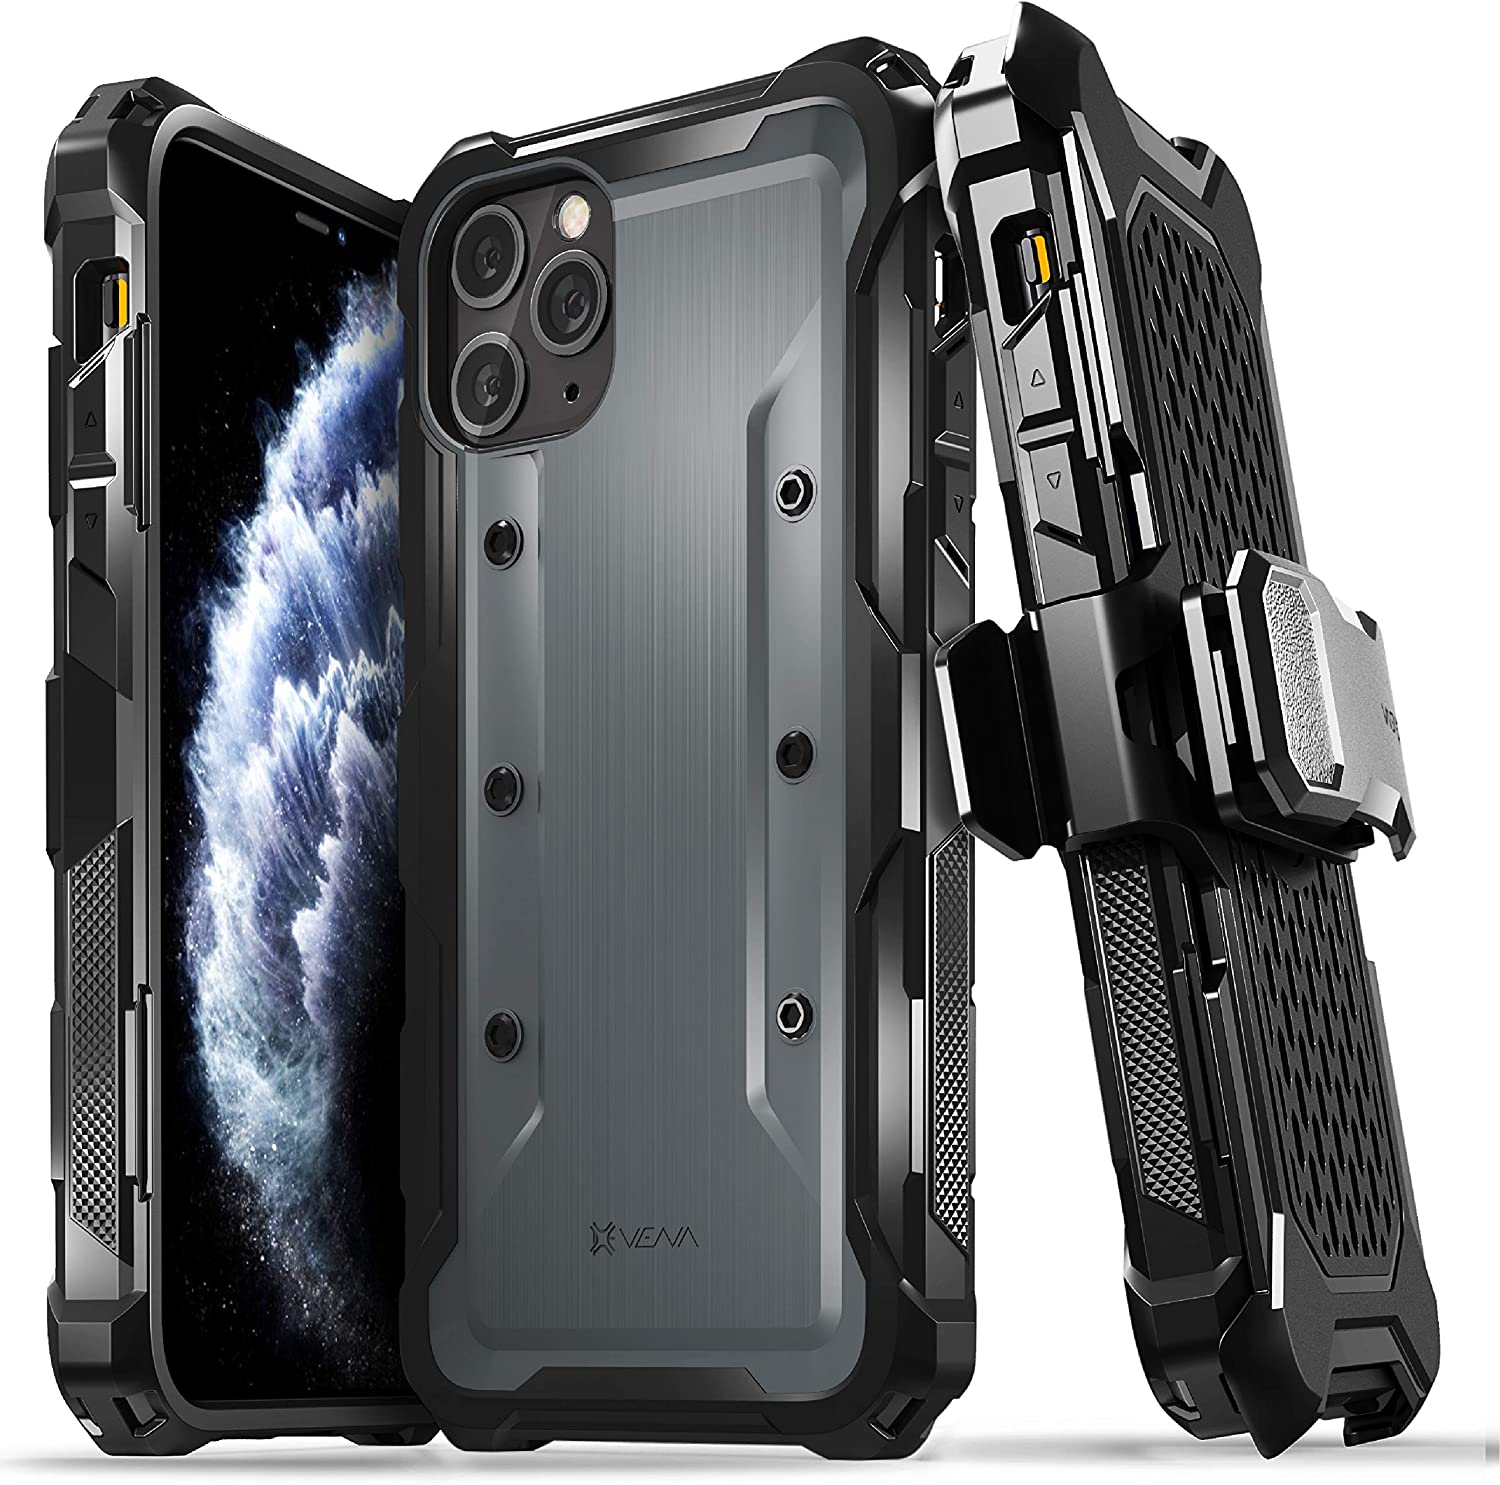 Amazon Com Vena Varmor Rugged Case Compatible With Apple Iphone 11 Pro Max 6 5 Inch 2019 Military Grade Drop Protection Heavy Duty Holster Belt Clip Cover With Kickstand Space Gray